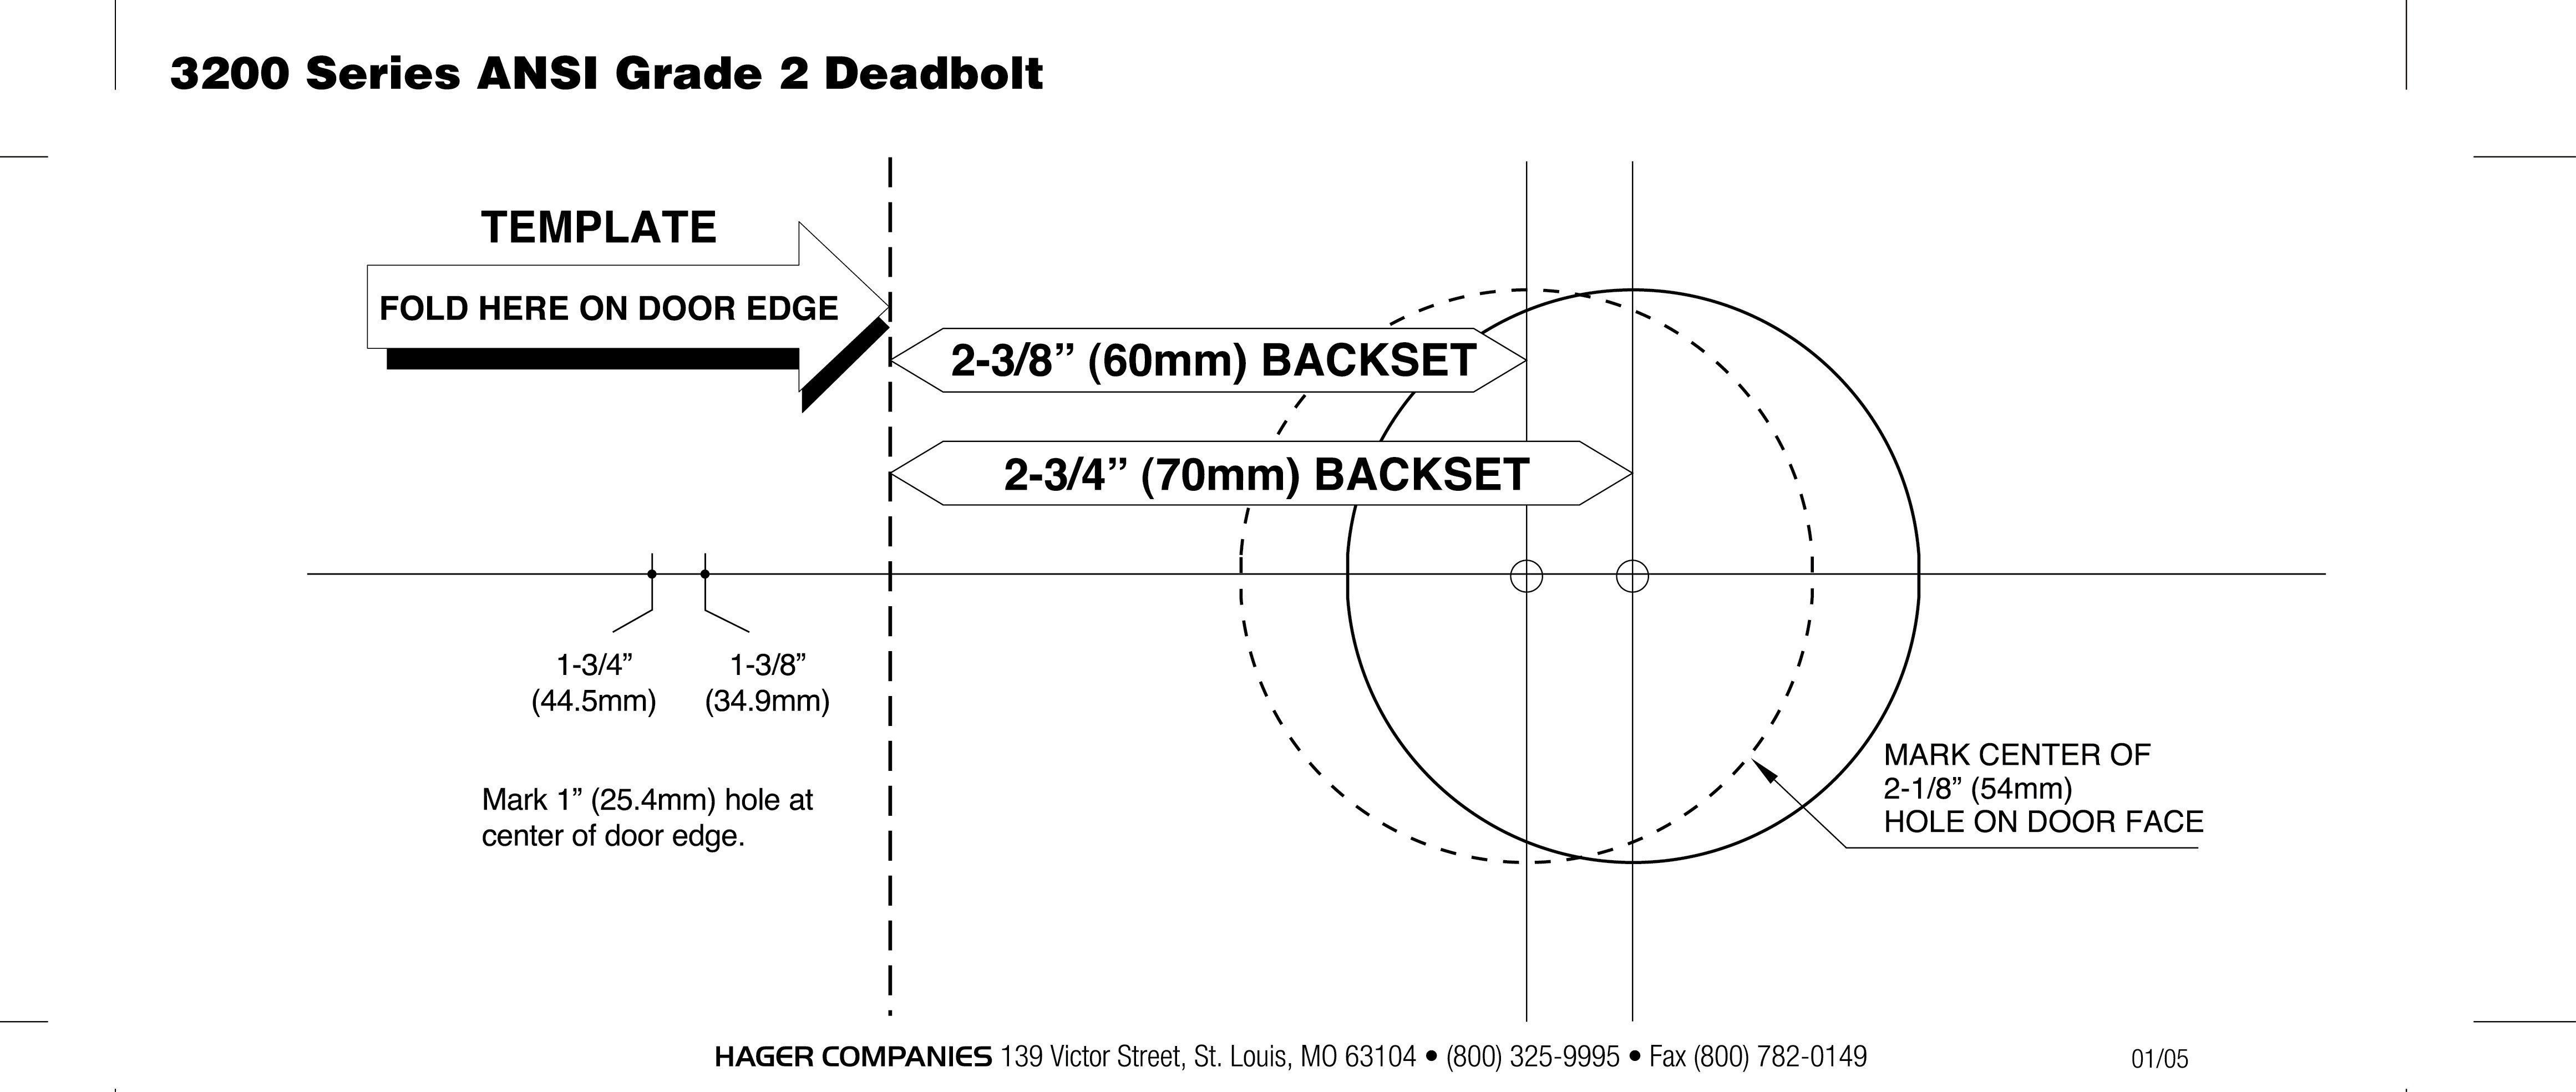 Deadbolt Installation Template Door Backset Template & Router Working Through Spaces In